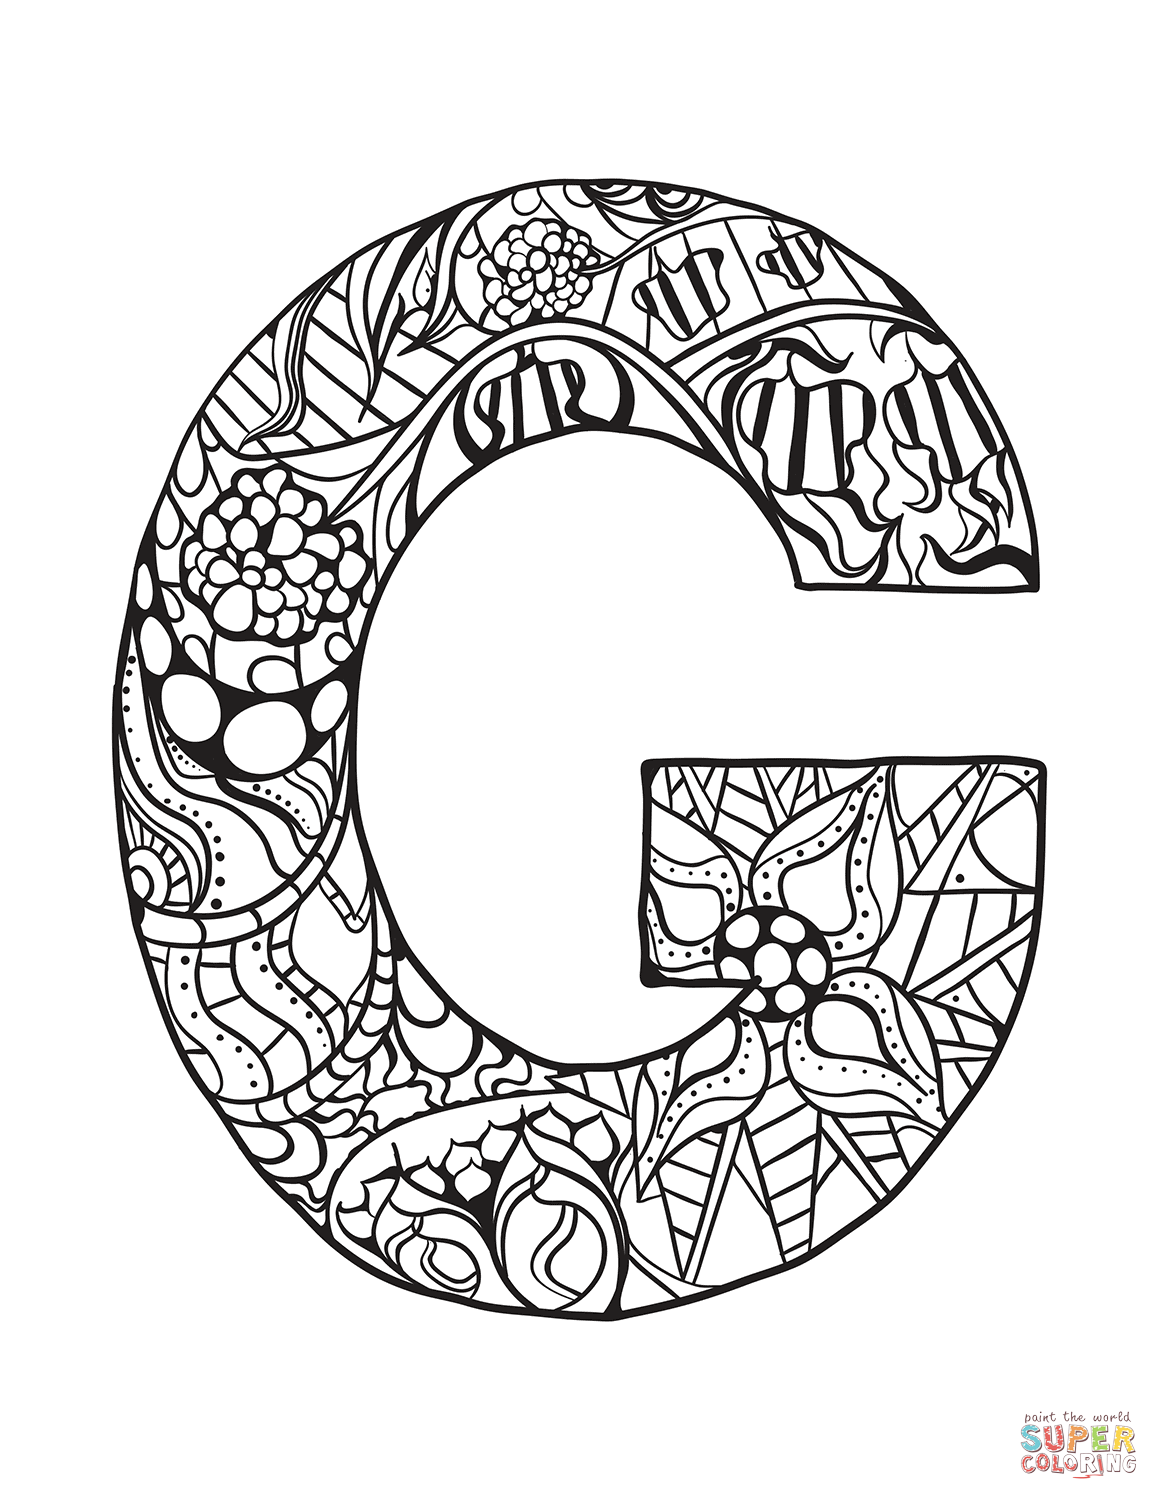 Letter G Zentangle Coloring Page Free Printable Coloring Pages Coloring Letters Coloring Pages Free Printable Coloring Pages